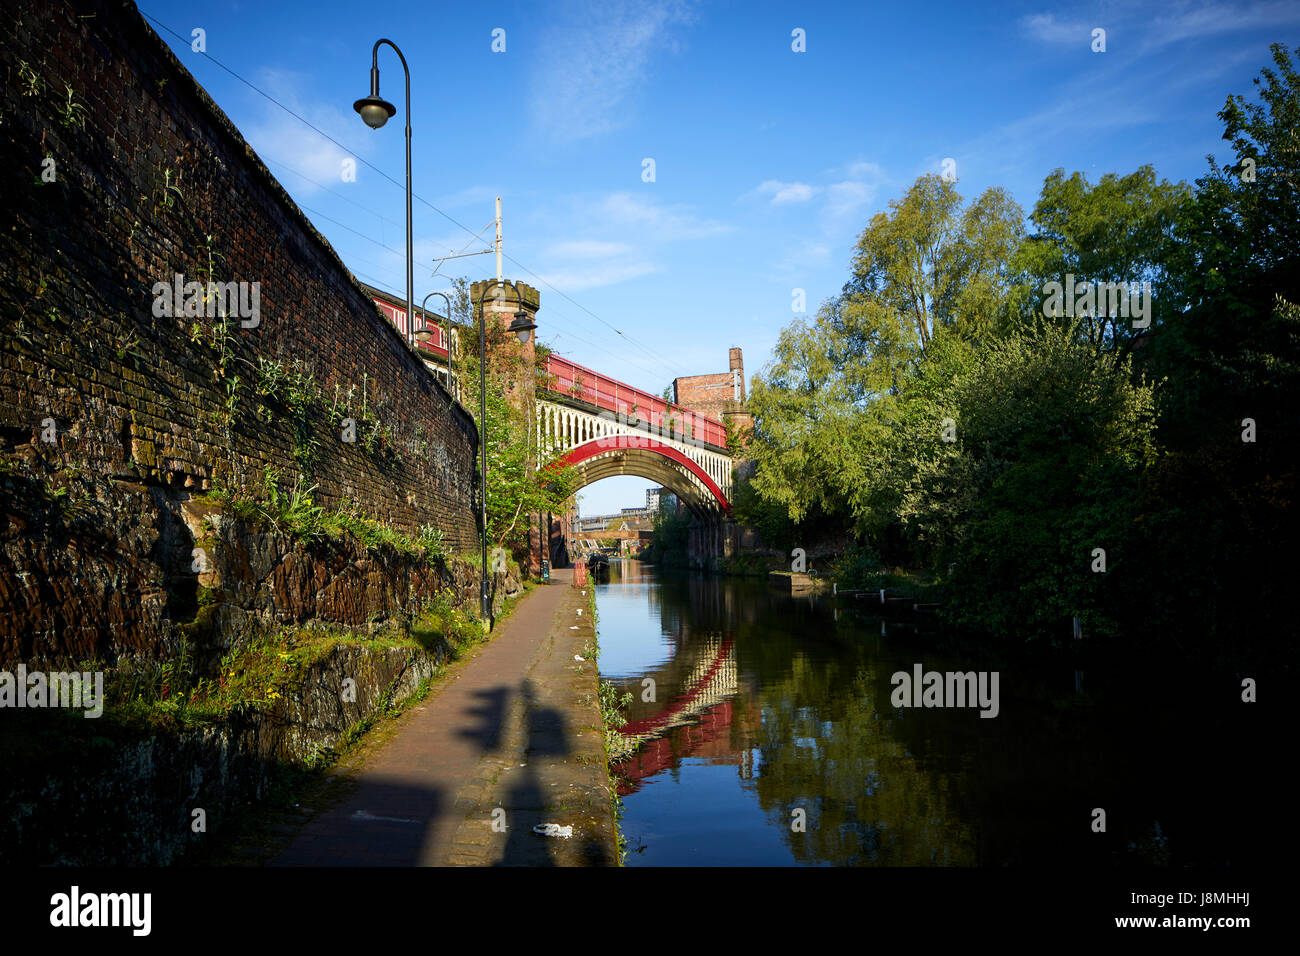 Sunny day, victorian cast iron railway bridges  Castlefield on the Rochdale Canal, Gtr Manchester, UK. Stock Photo